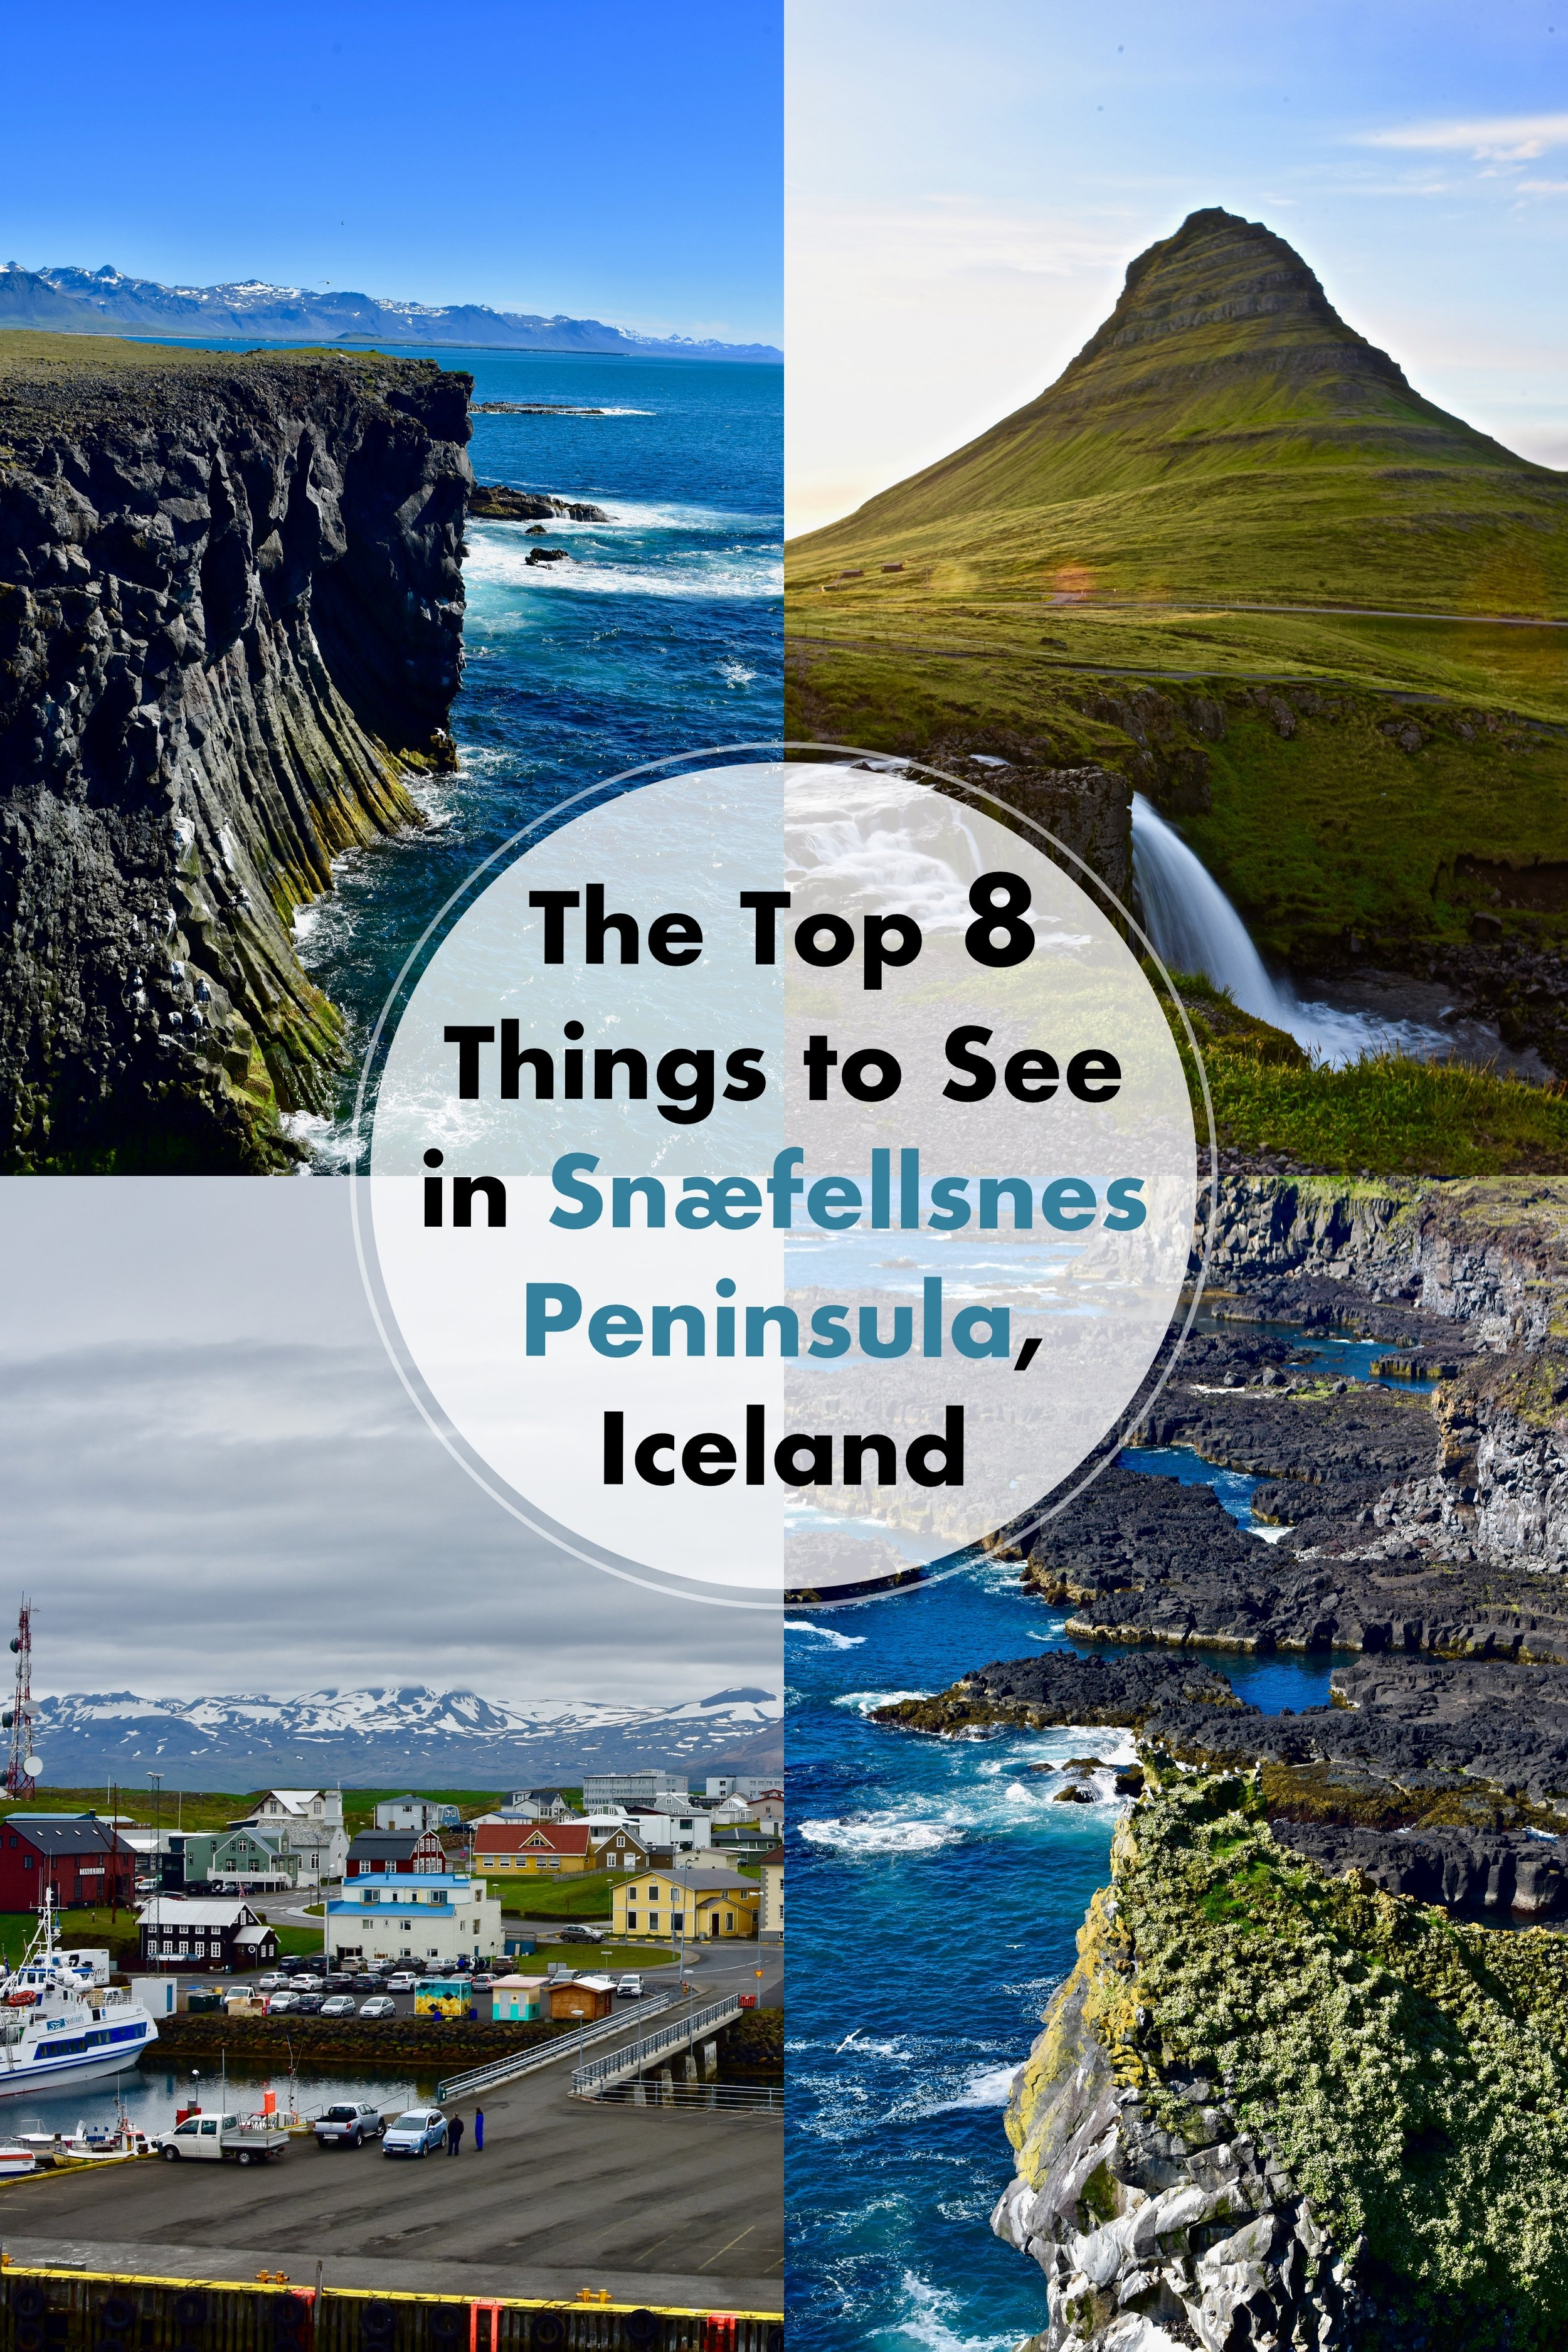 The Top 8 Things to See in Snæfellsnes Peninsula, Iceland. Snæfellsnes Peninsula is one of the most extraordinary regions in Iceland for dramatic landscapes and must-see sights. You can see everything from glaciers, lava fields, waterfalls, varying colored beaches, steep ocean cliffs, or volcano peaks. #iceland #europe #travel #top8 #snæfellsnespeninsula #mustsee #bucketlist